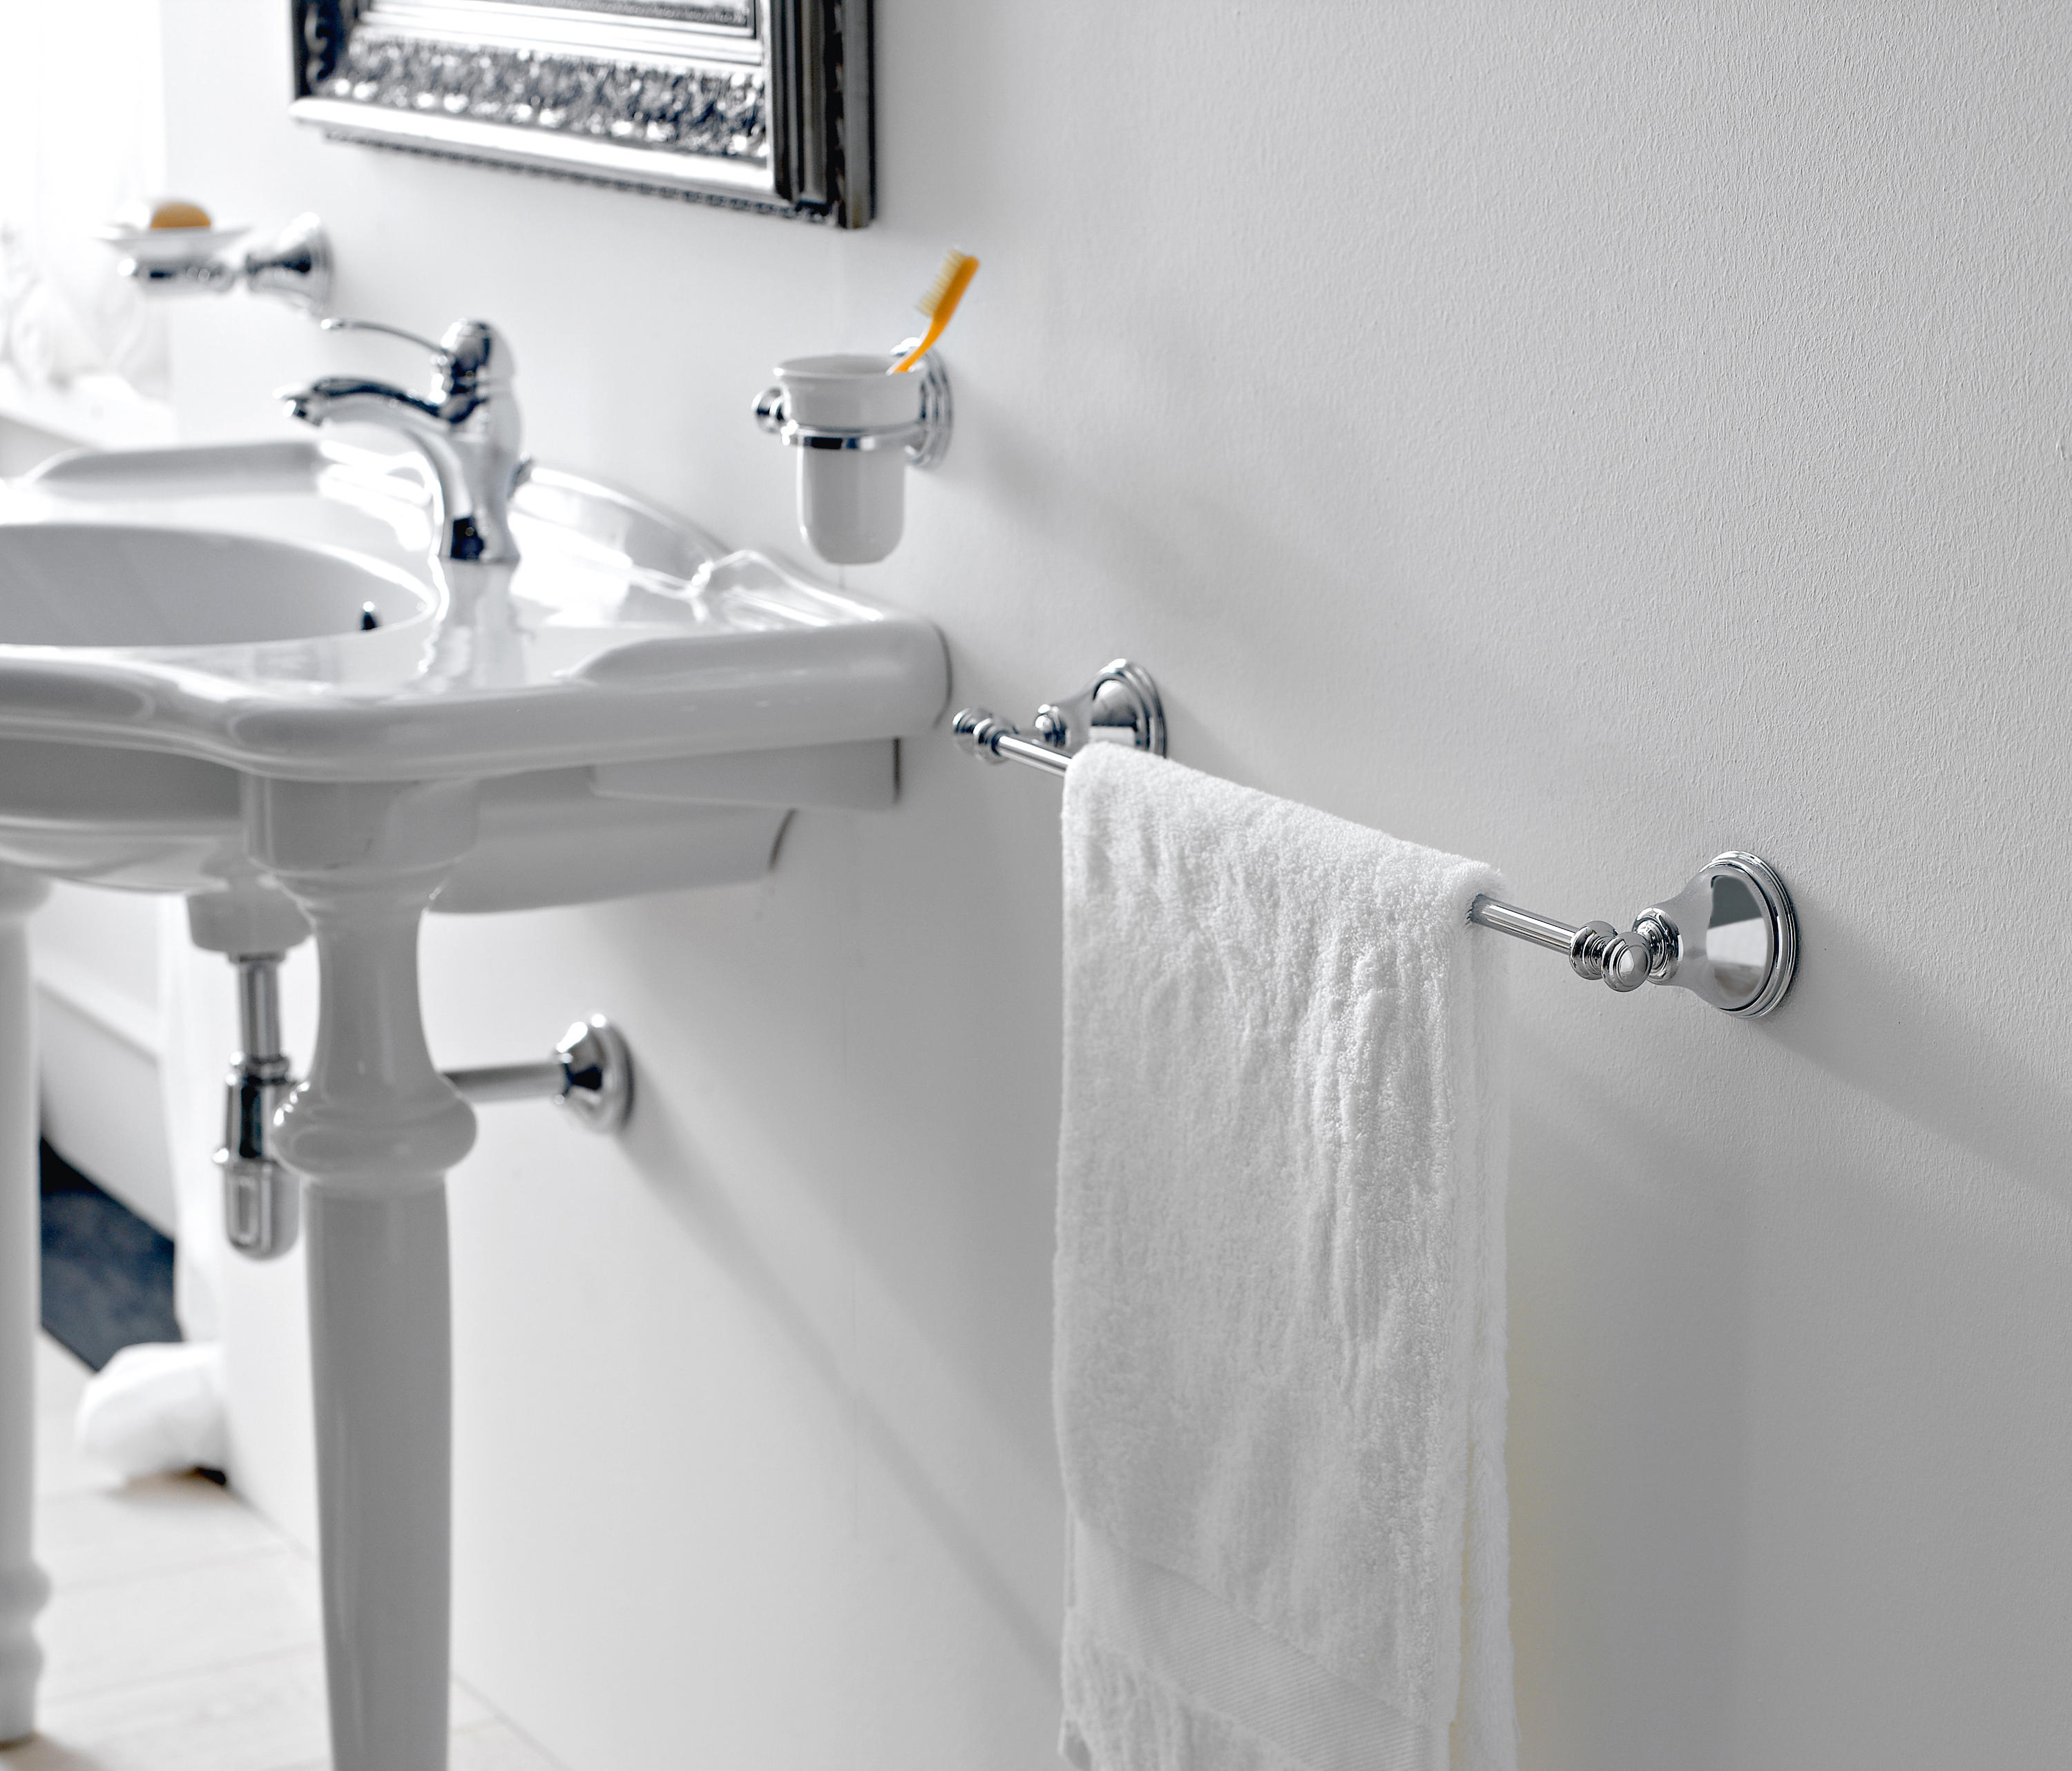 OLD ITALY 4414 - Wash basin taps from Rubinetterie Treemme | Architonic